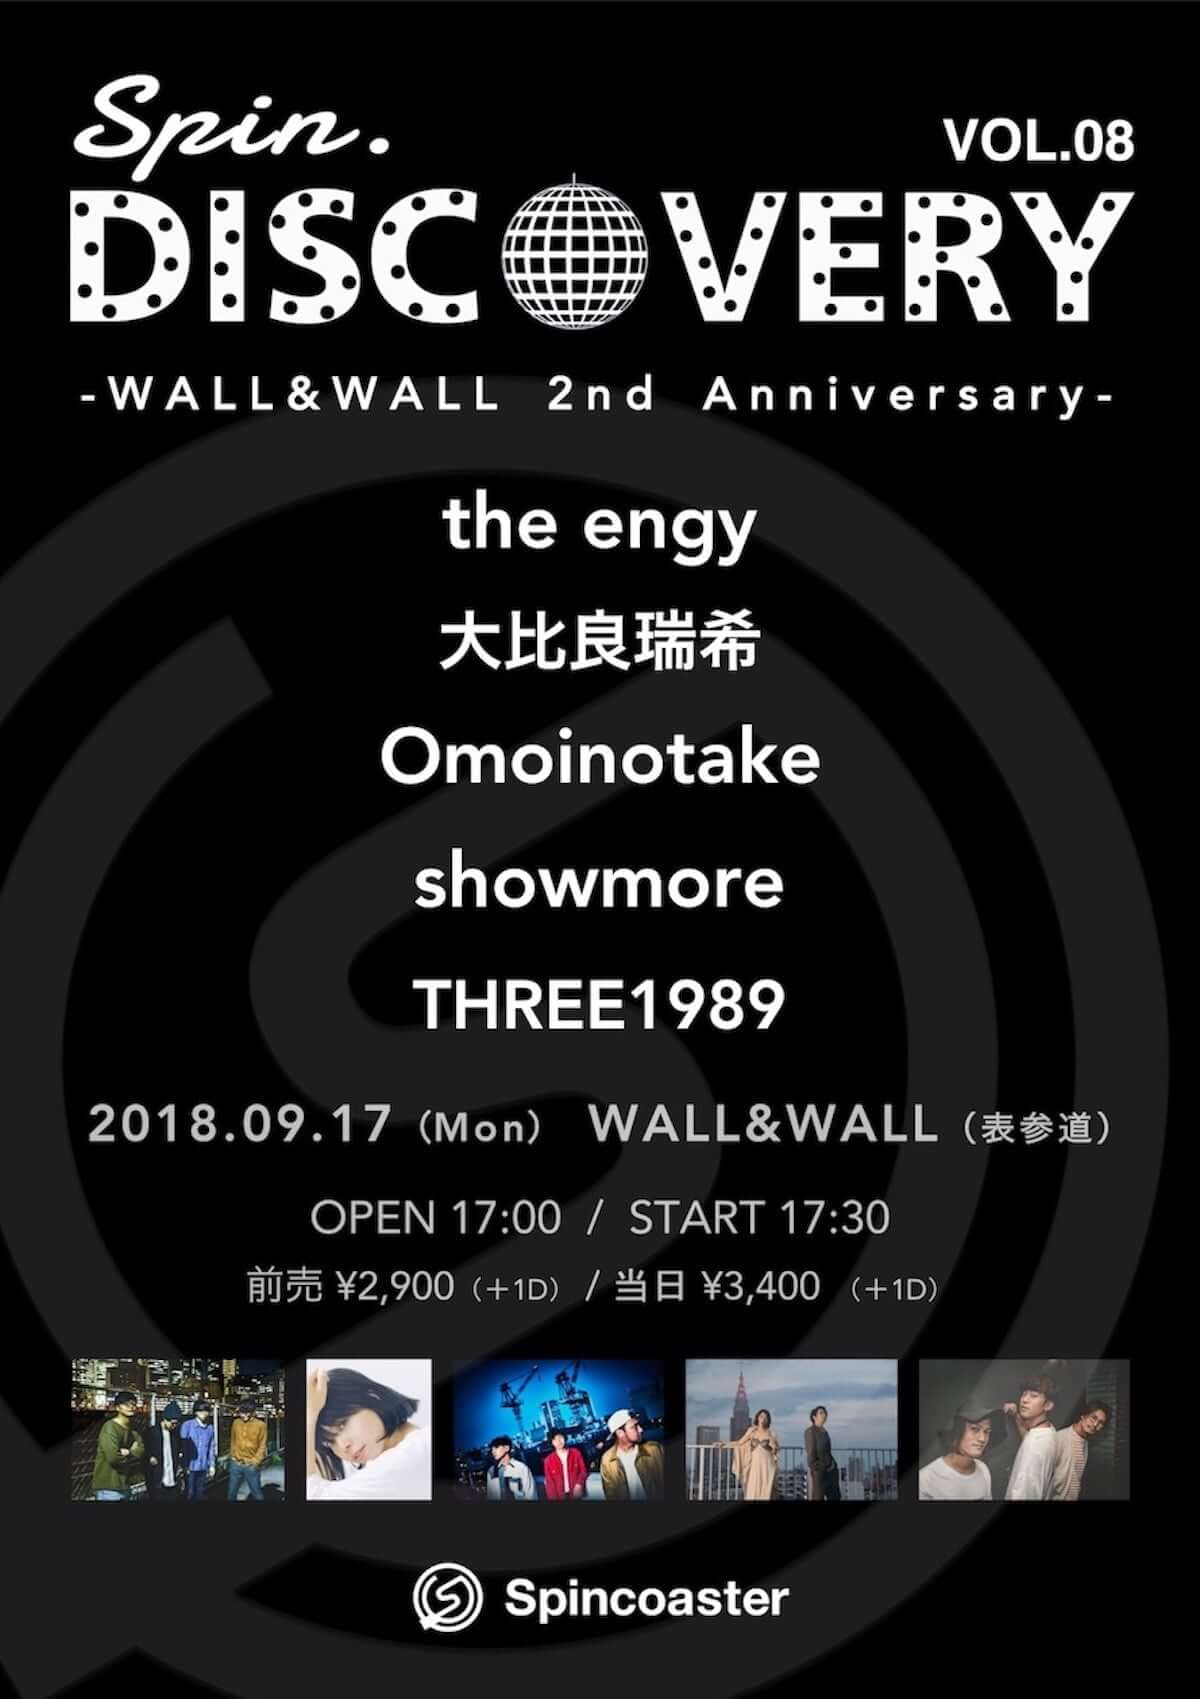 9月開催のSpincoaster主催イベントにthe engy、大比良瑞希、Omoinotake、showmore、THREE1989が出演 music180828-spincoaster-1200x1699